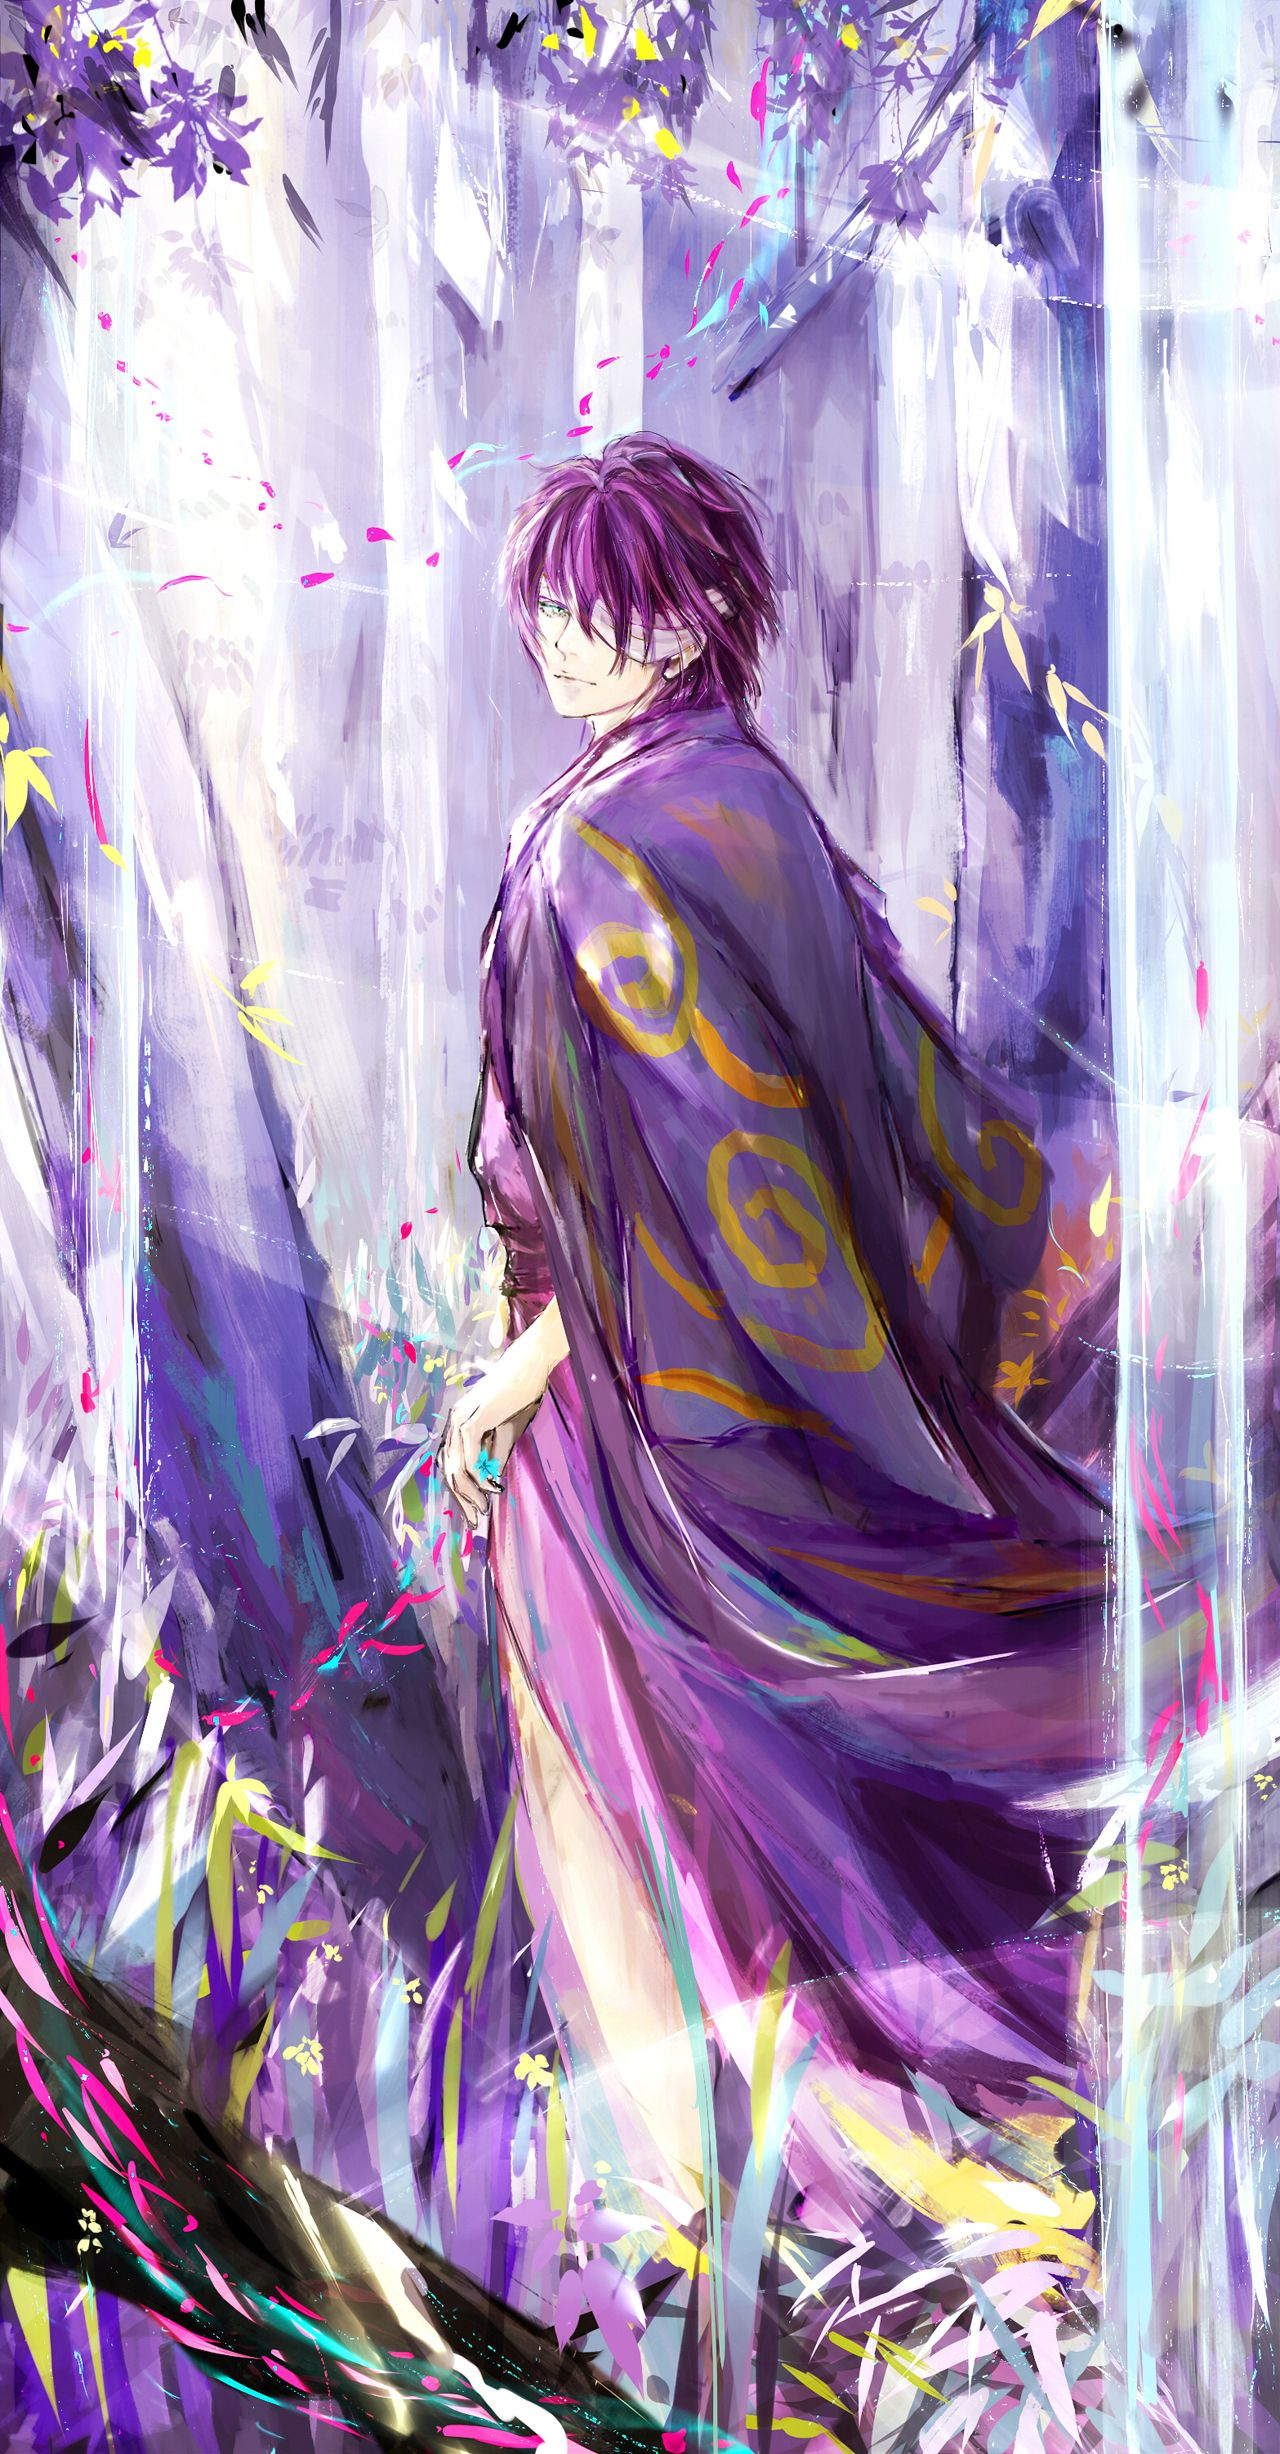 Takasugi Shinsuke Gintama Wallpaper Anime Anime Images